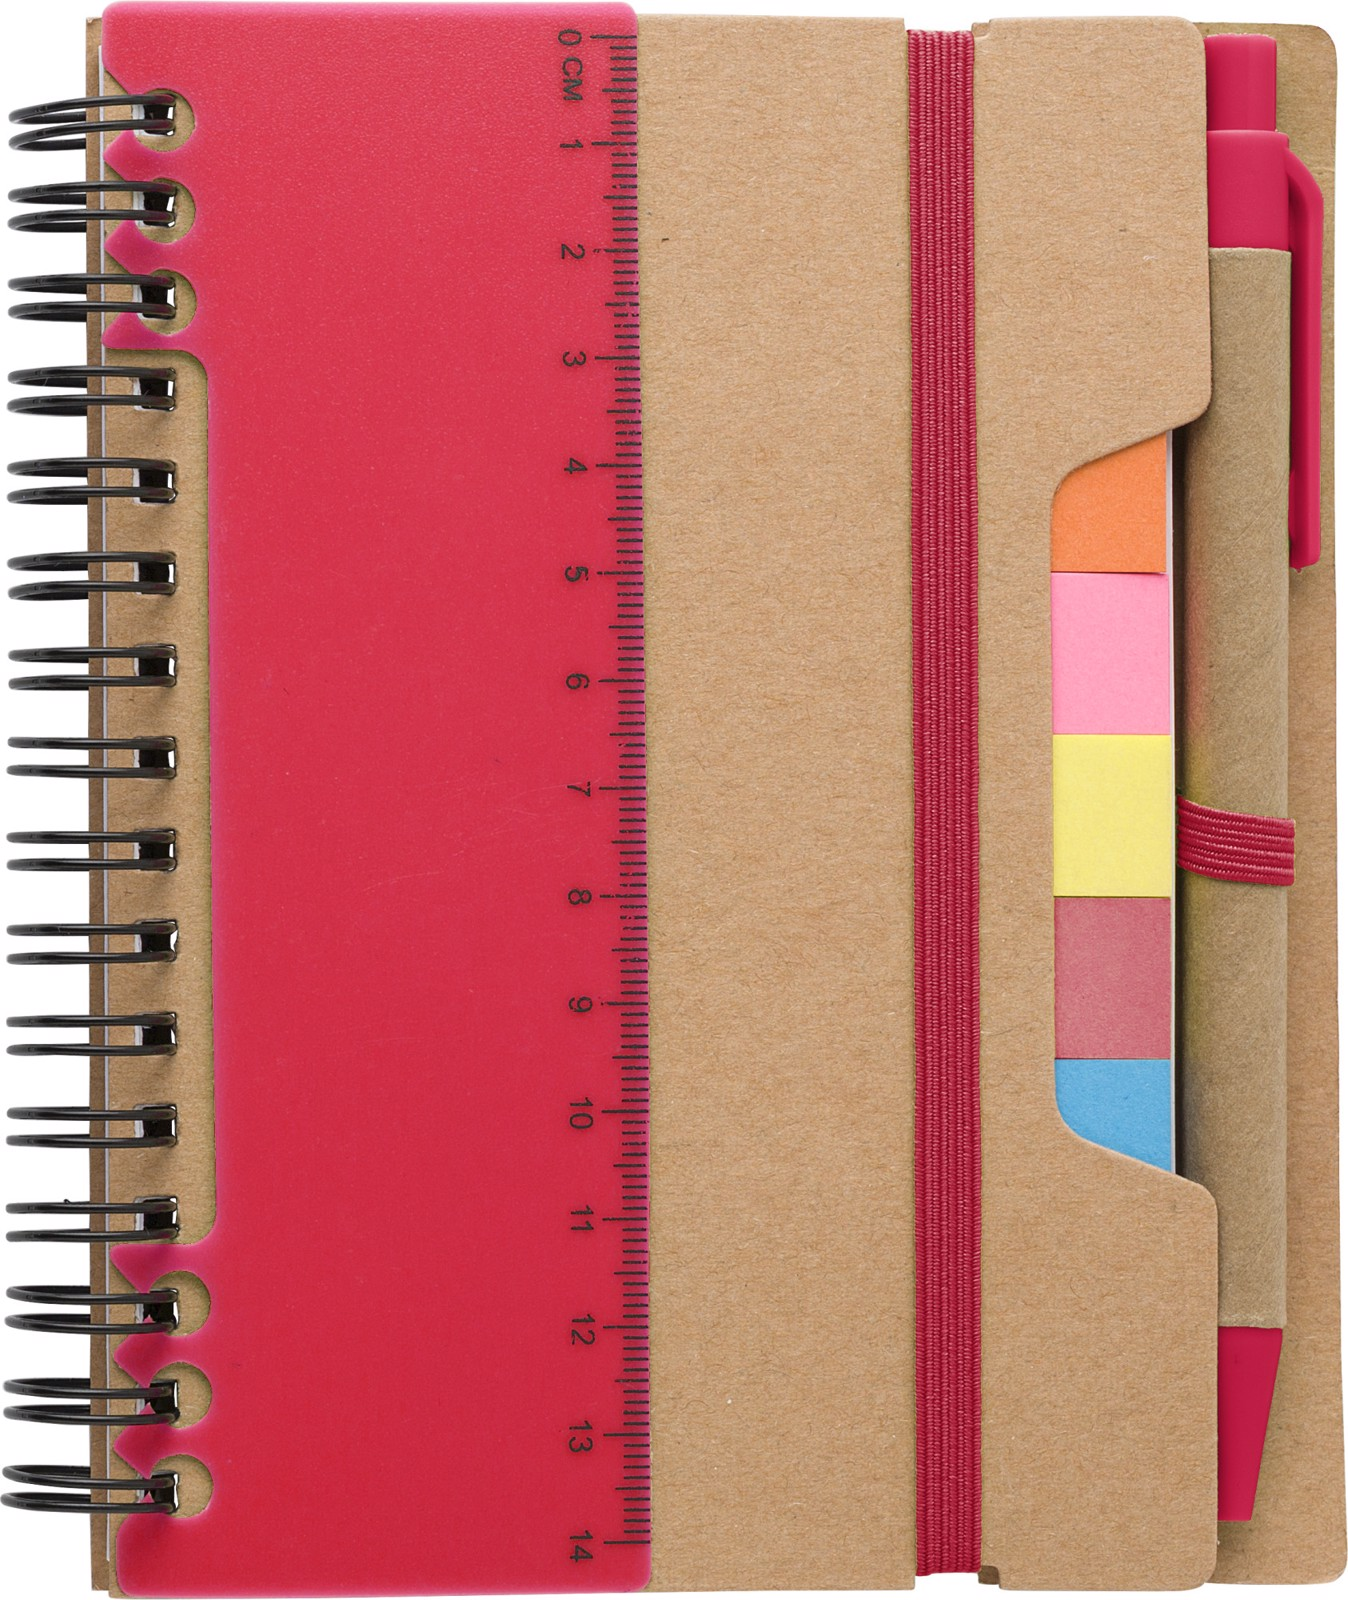 Recycled paper notebook - Red